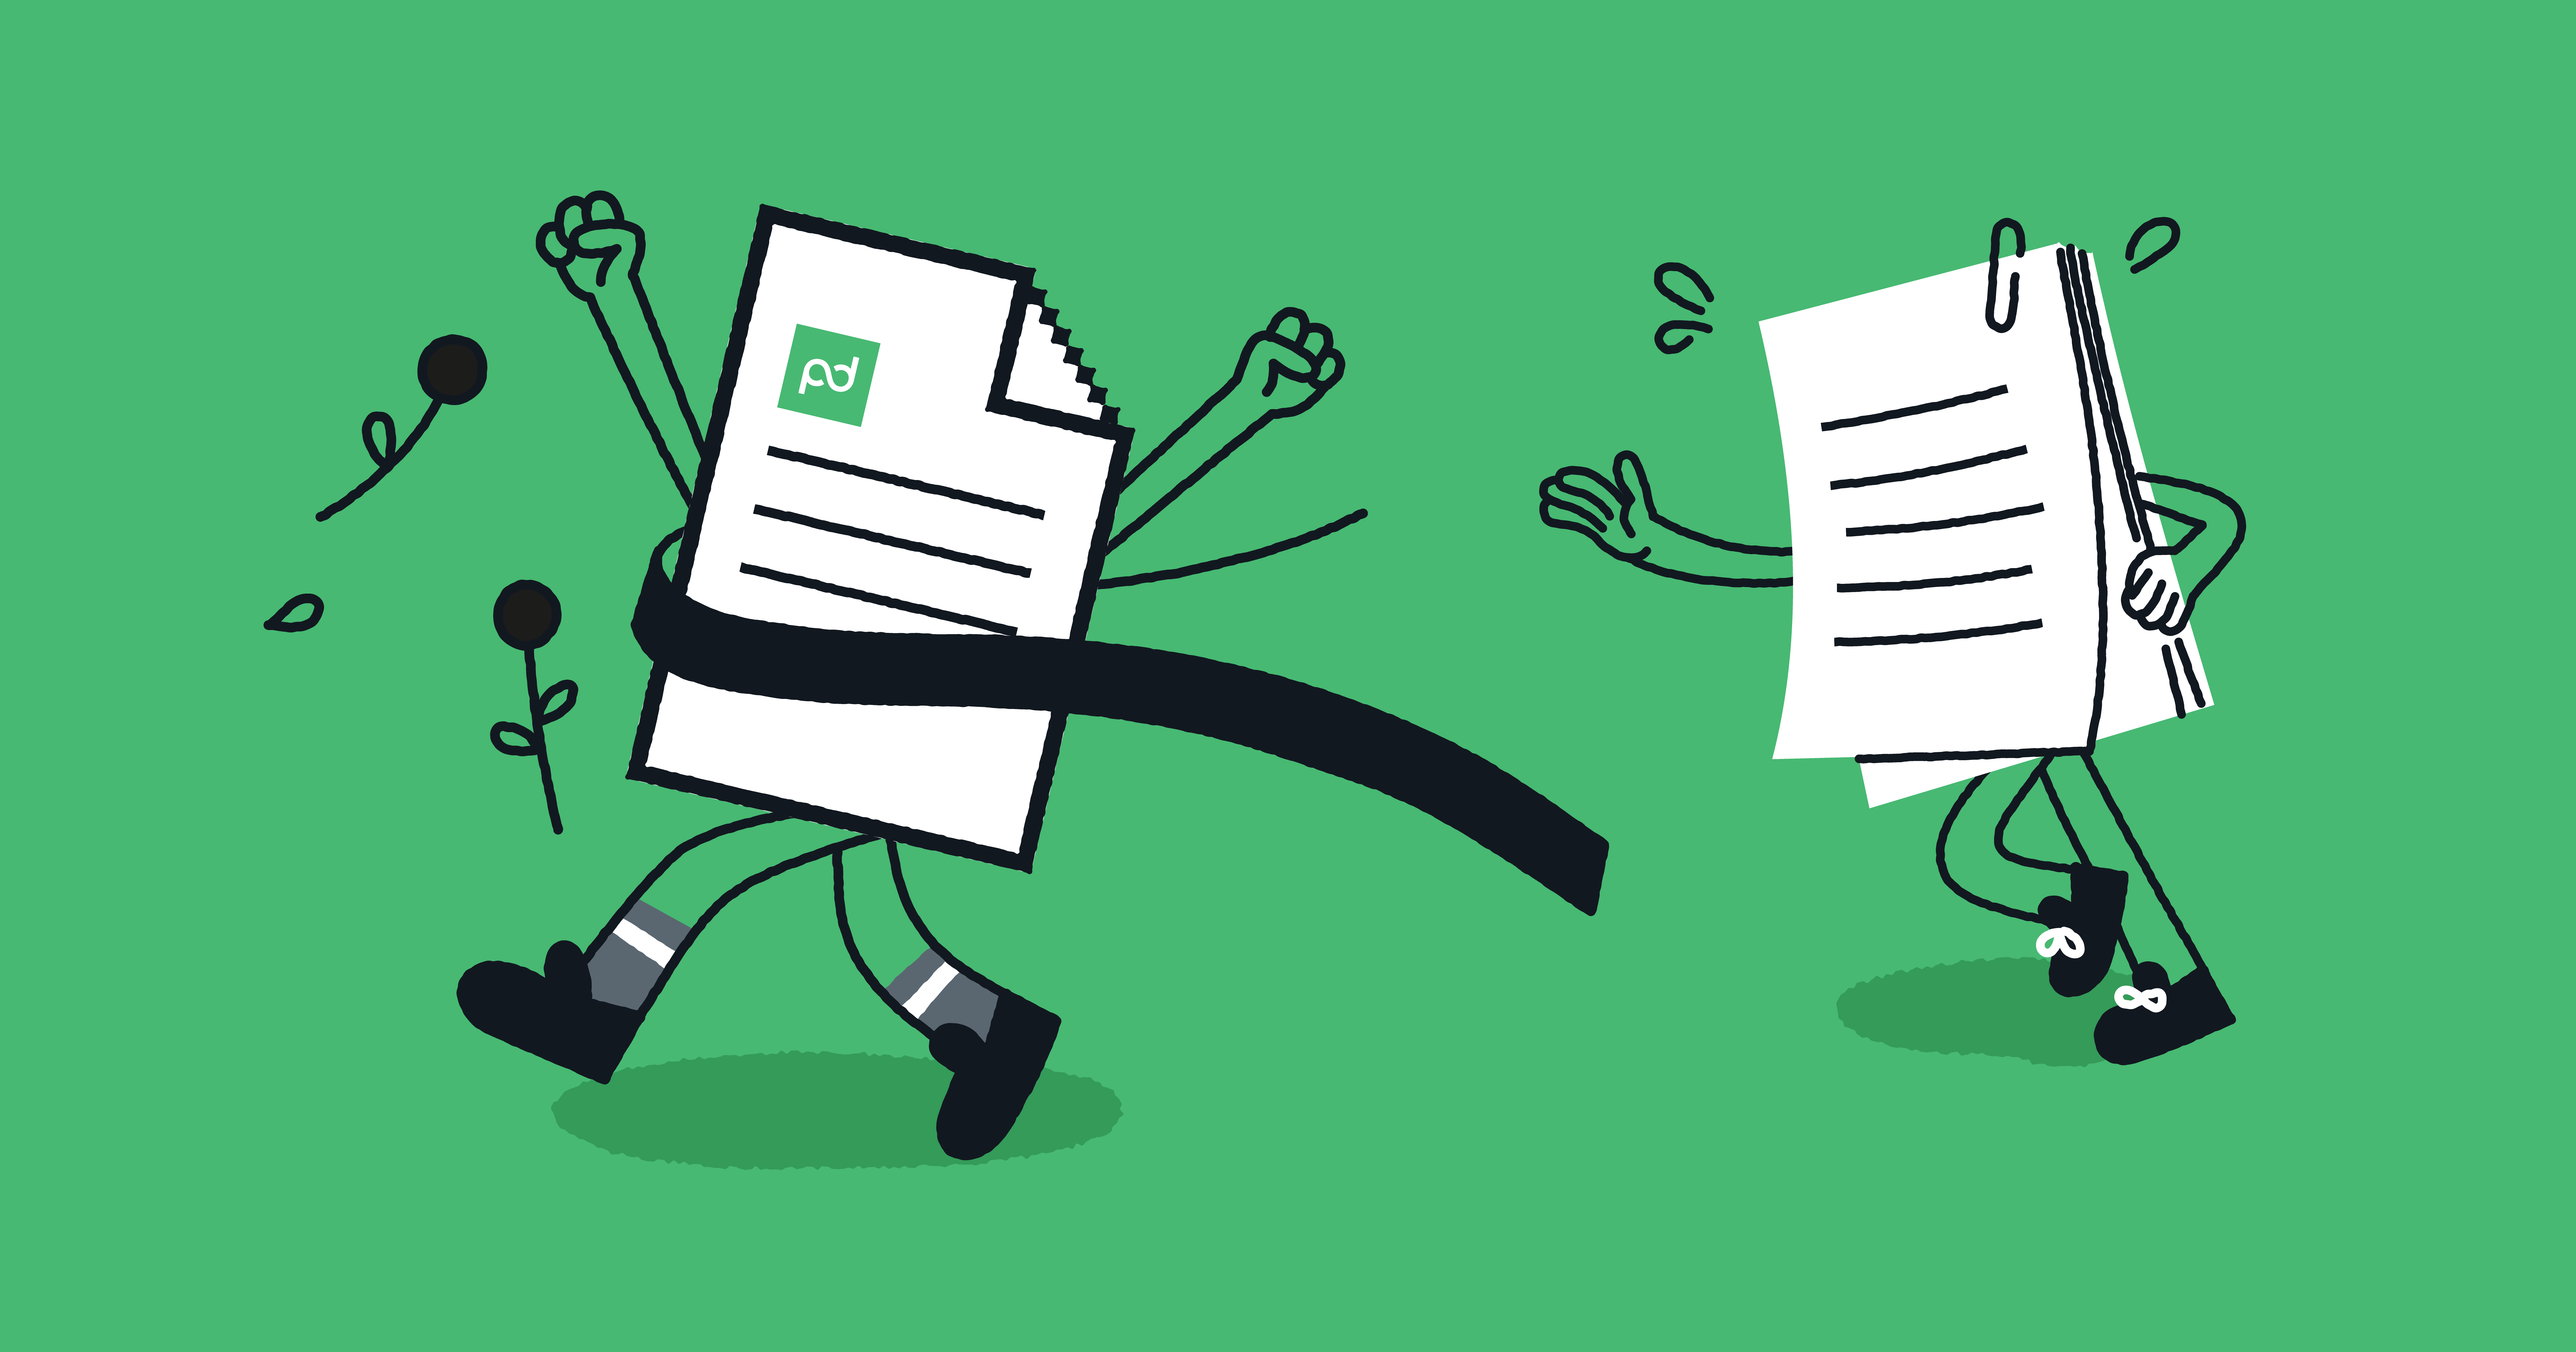 The difference between electronic contracts and traditional contracts